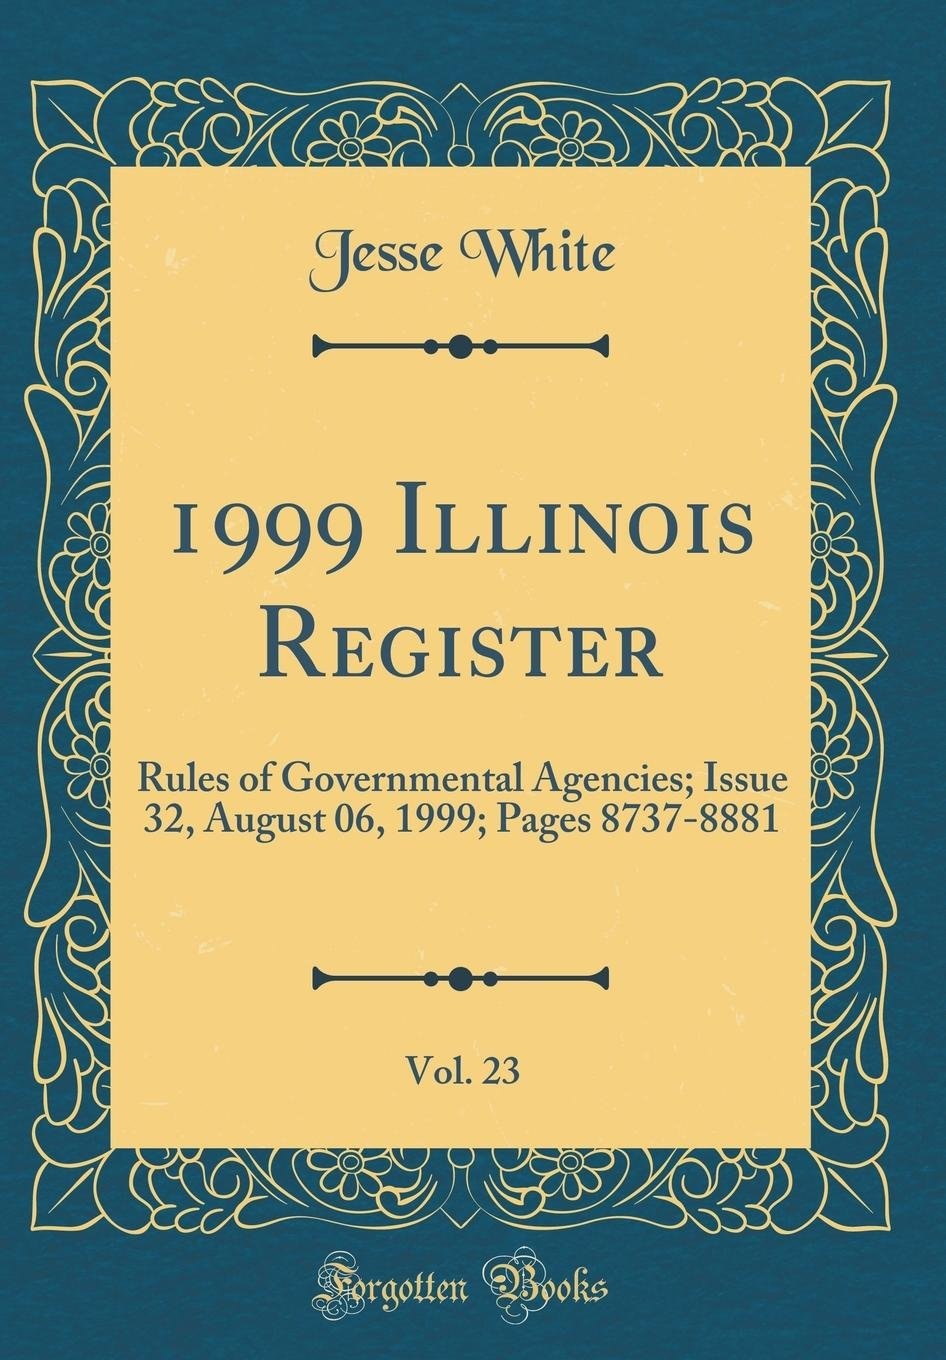 1999 Illinois Register, Vol. 23: Rules of Governmental Agencies; Issue 32, August 06, 1999; Pages 8737-8881 (Classic Reprint) PDF